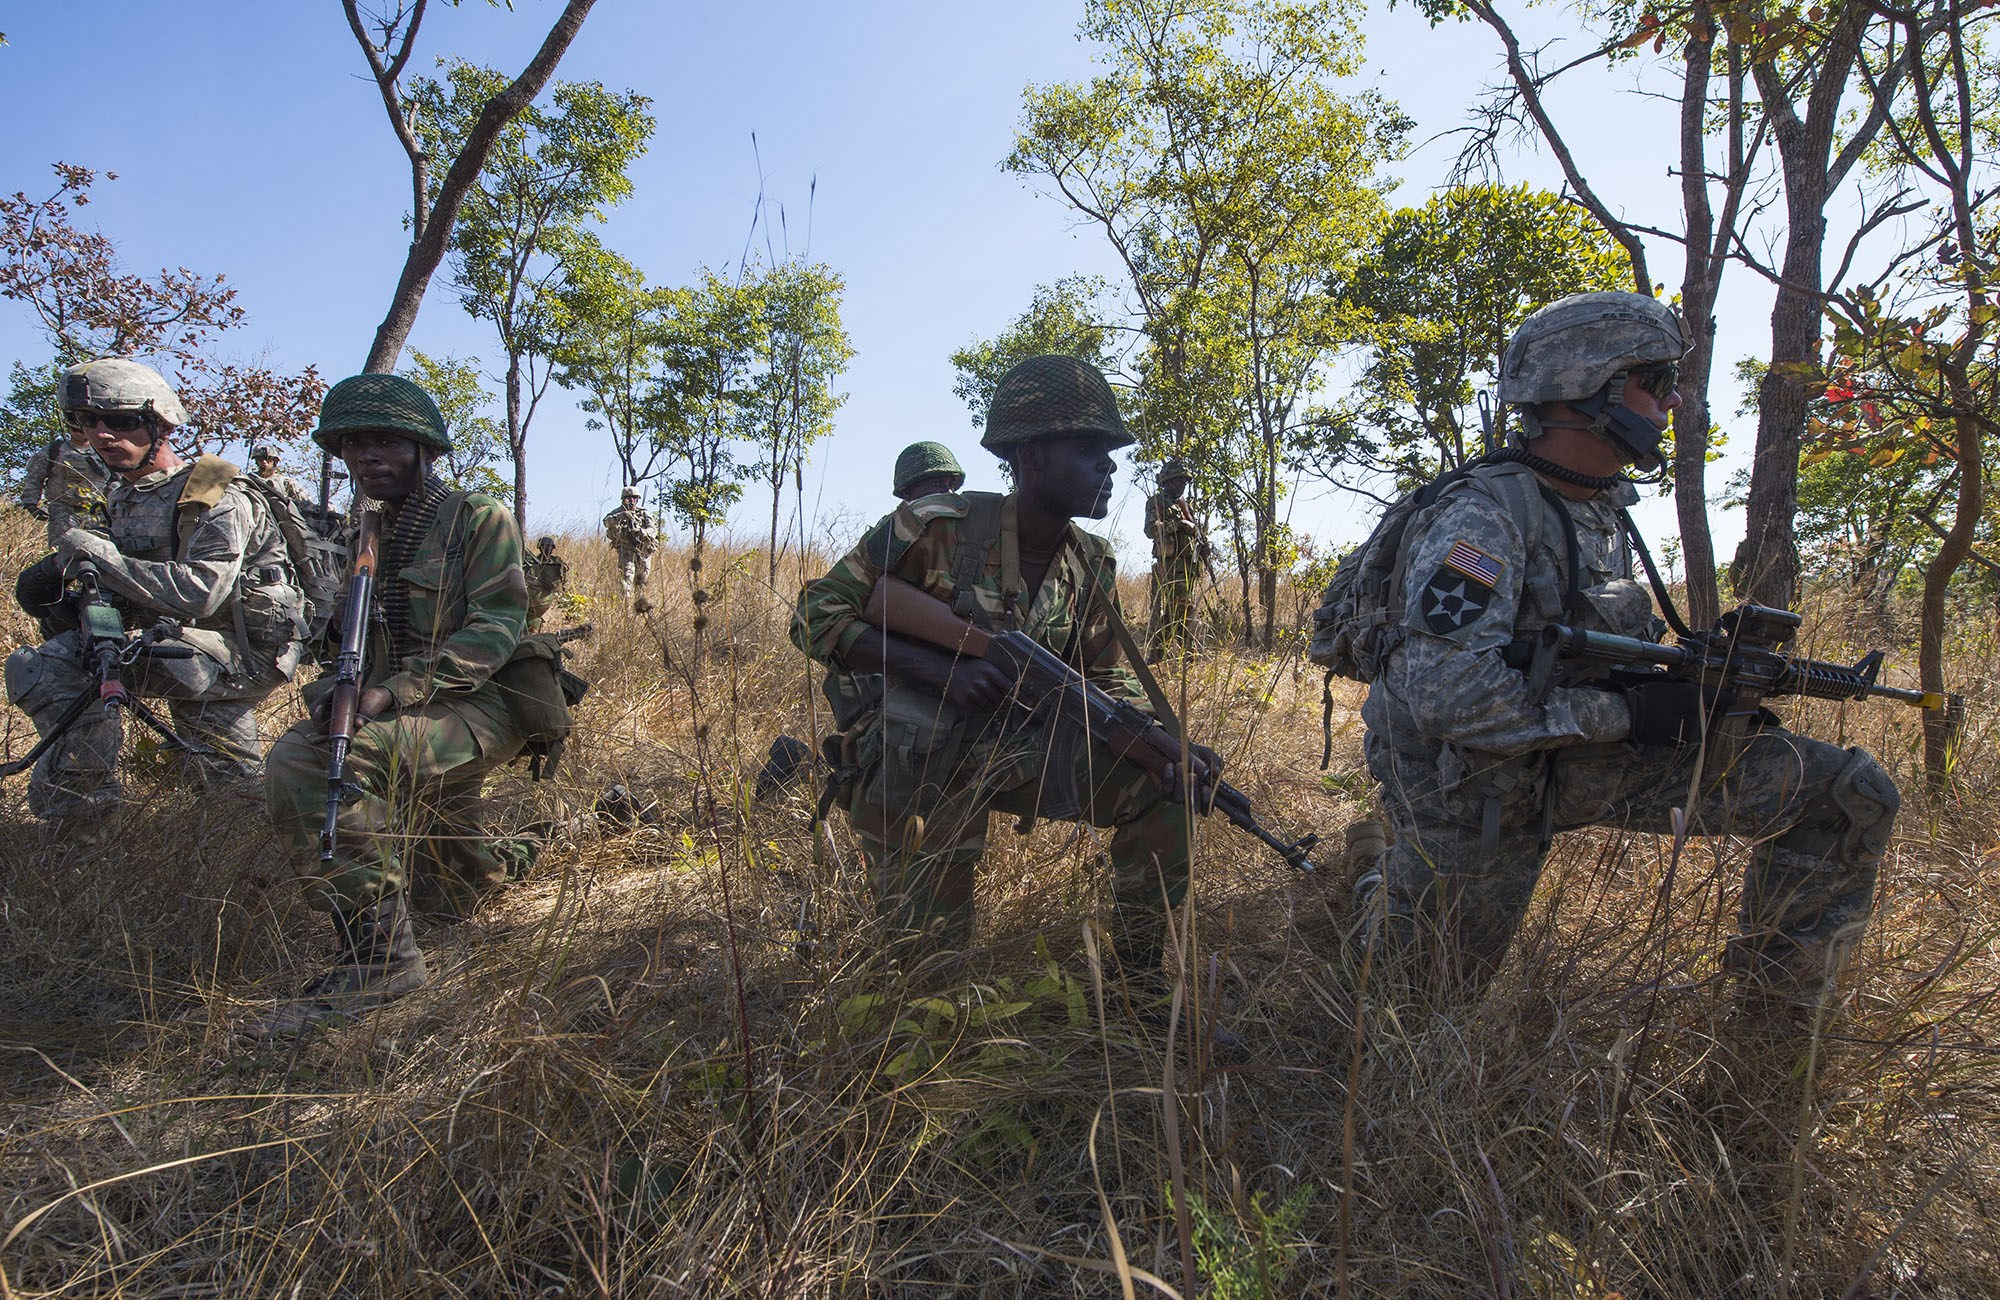 U.S. Army Soldiers and members of the Zambian Defense Force work together during a daytime tactical movement during Exercise Southern Accord 15 in Lusaka, Zambia, Aug. 15, 2015.